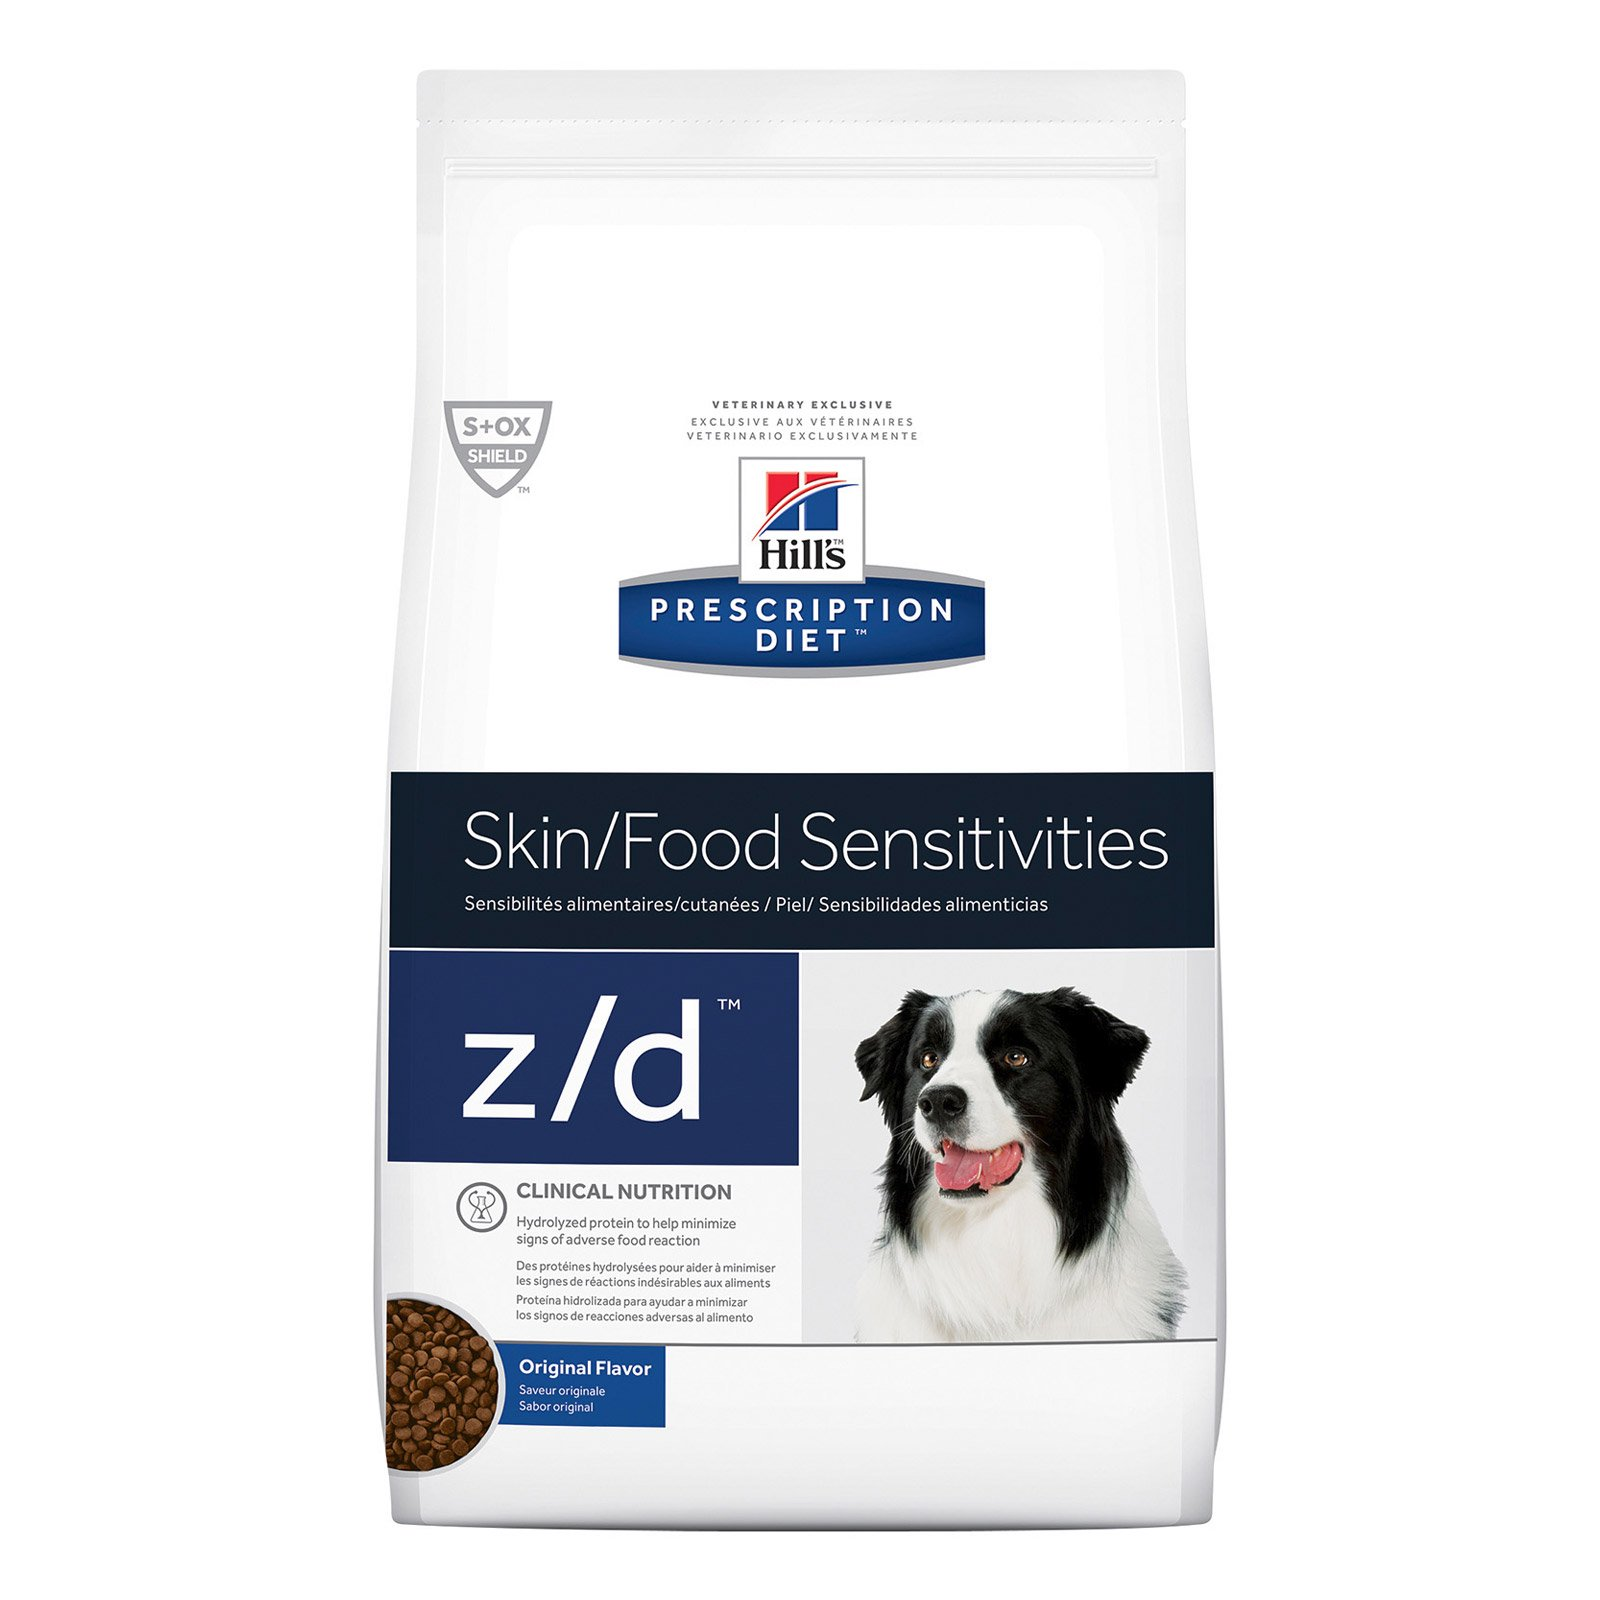 Hill's Prescription Diet z/d Skin/Food Sensitivities Dry Dog Food